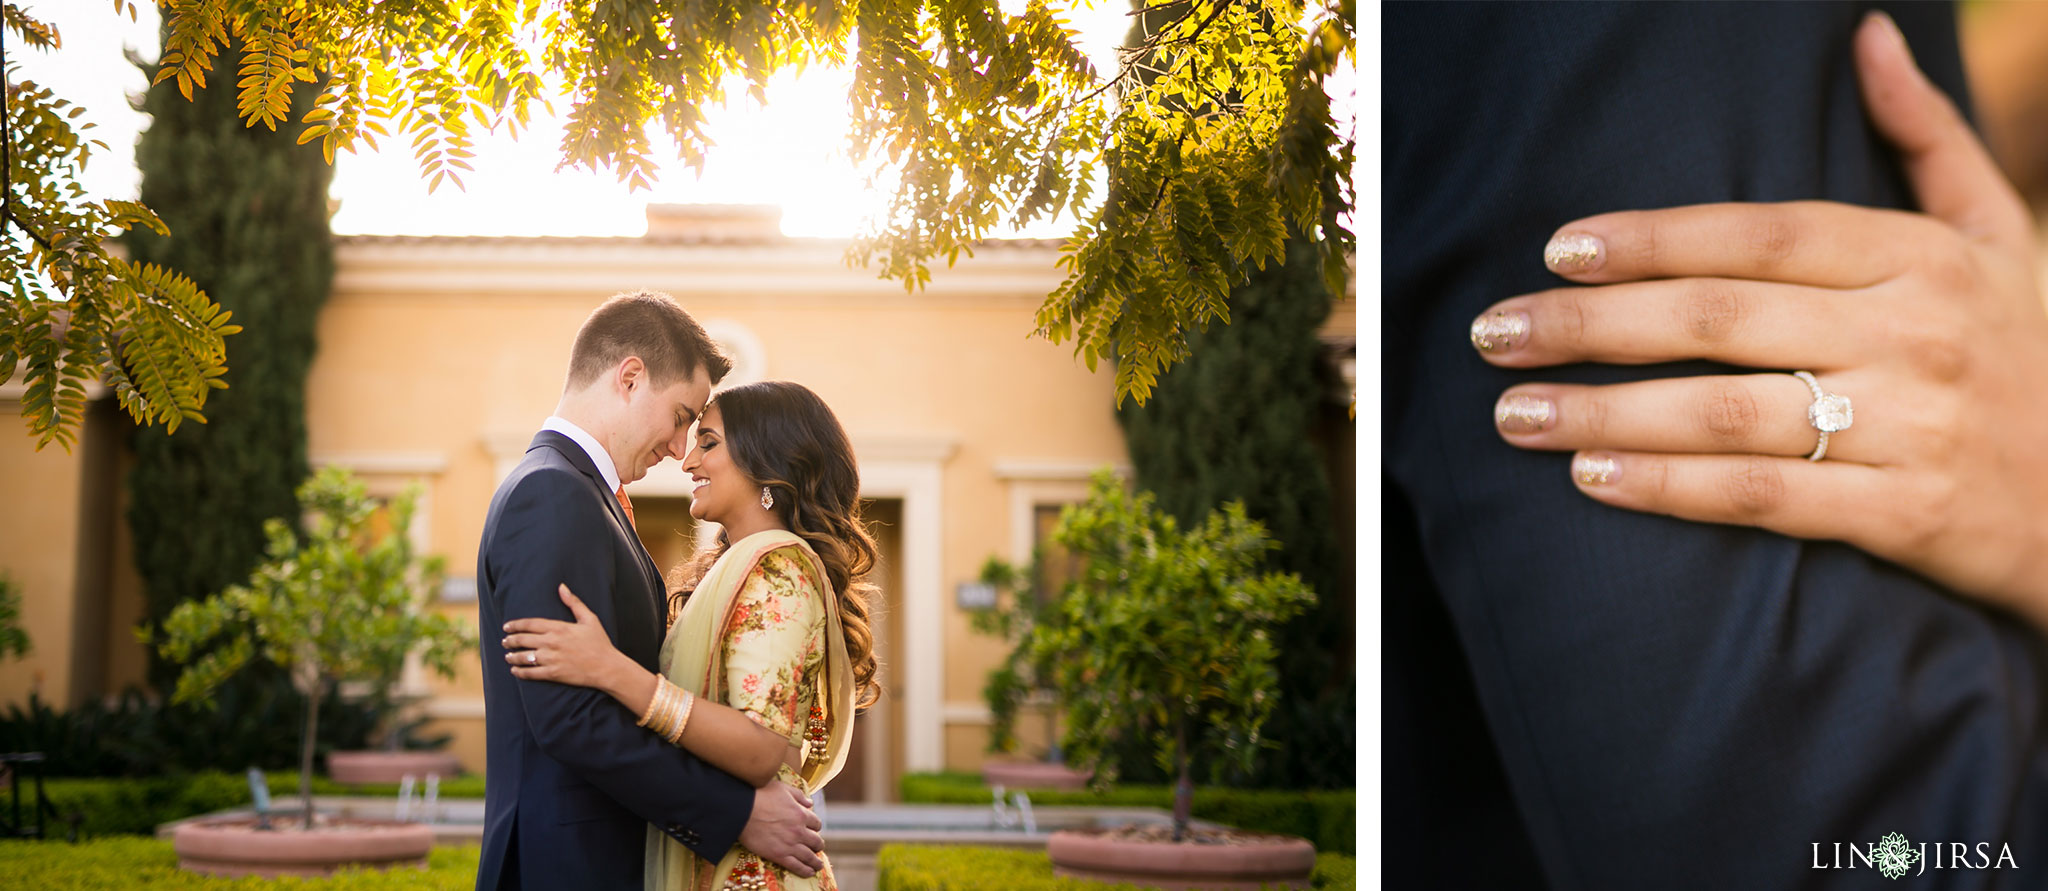 07 pelican hill indian engagement party photography